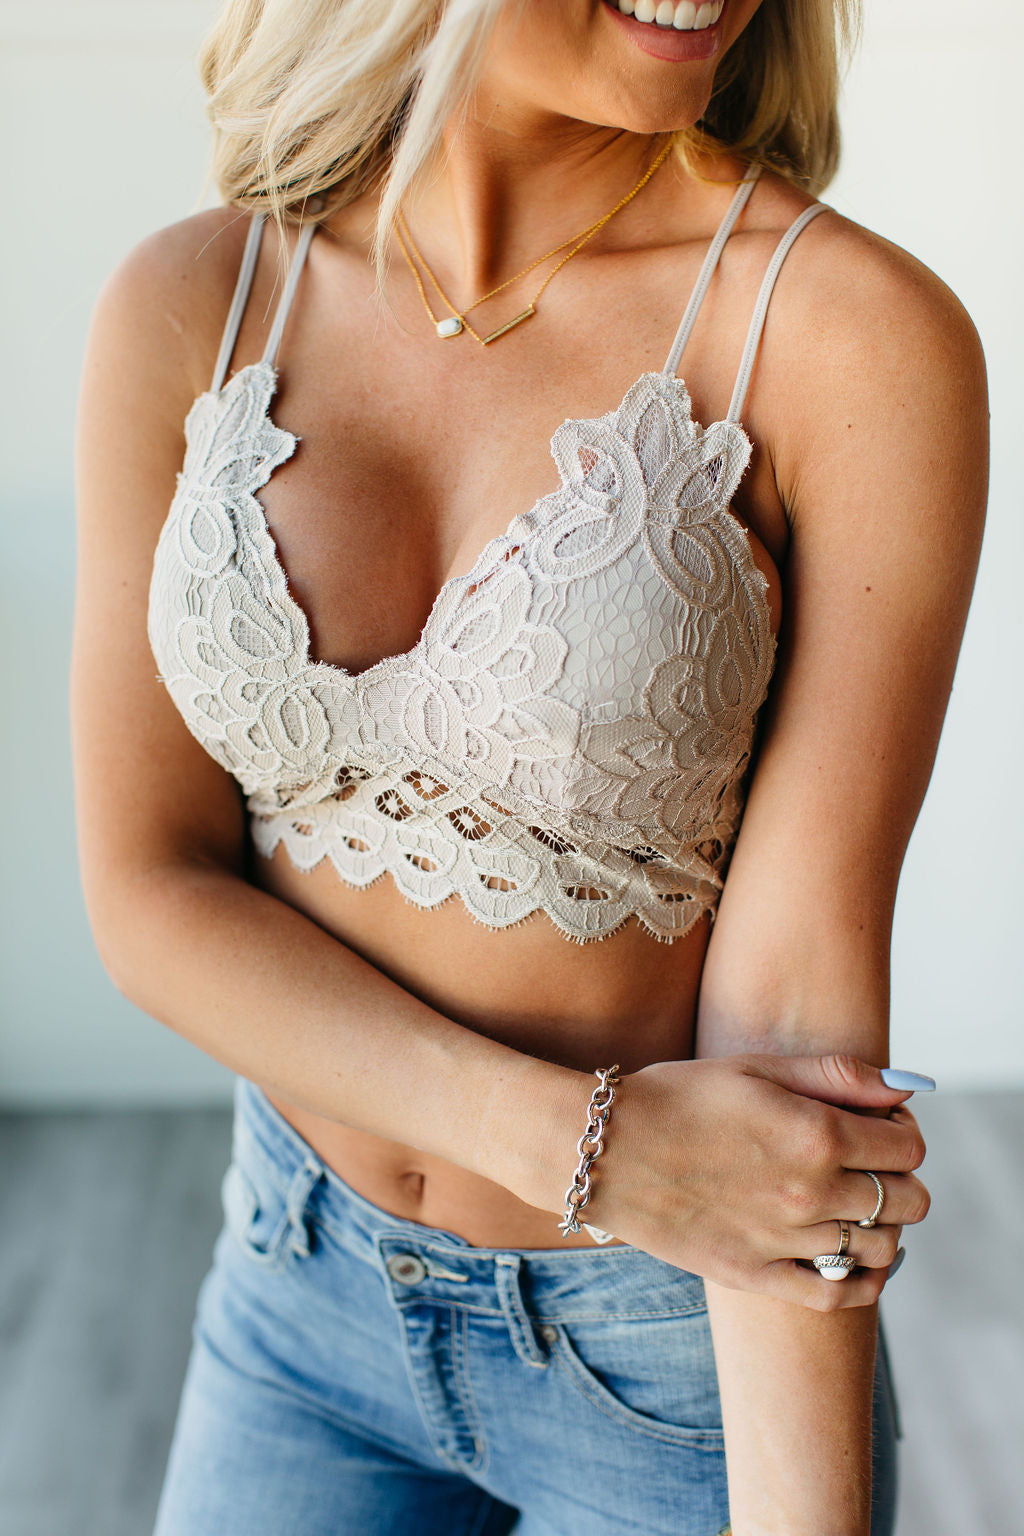 Scalloped Lace Bralette   Champagne by Mindy Mae's Market